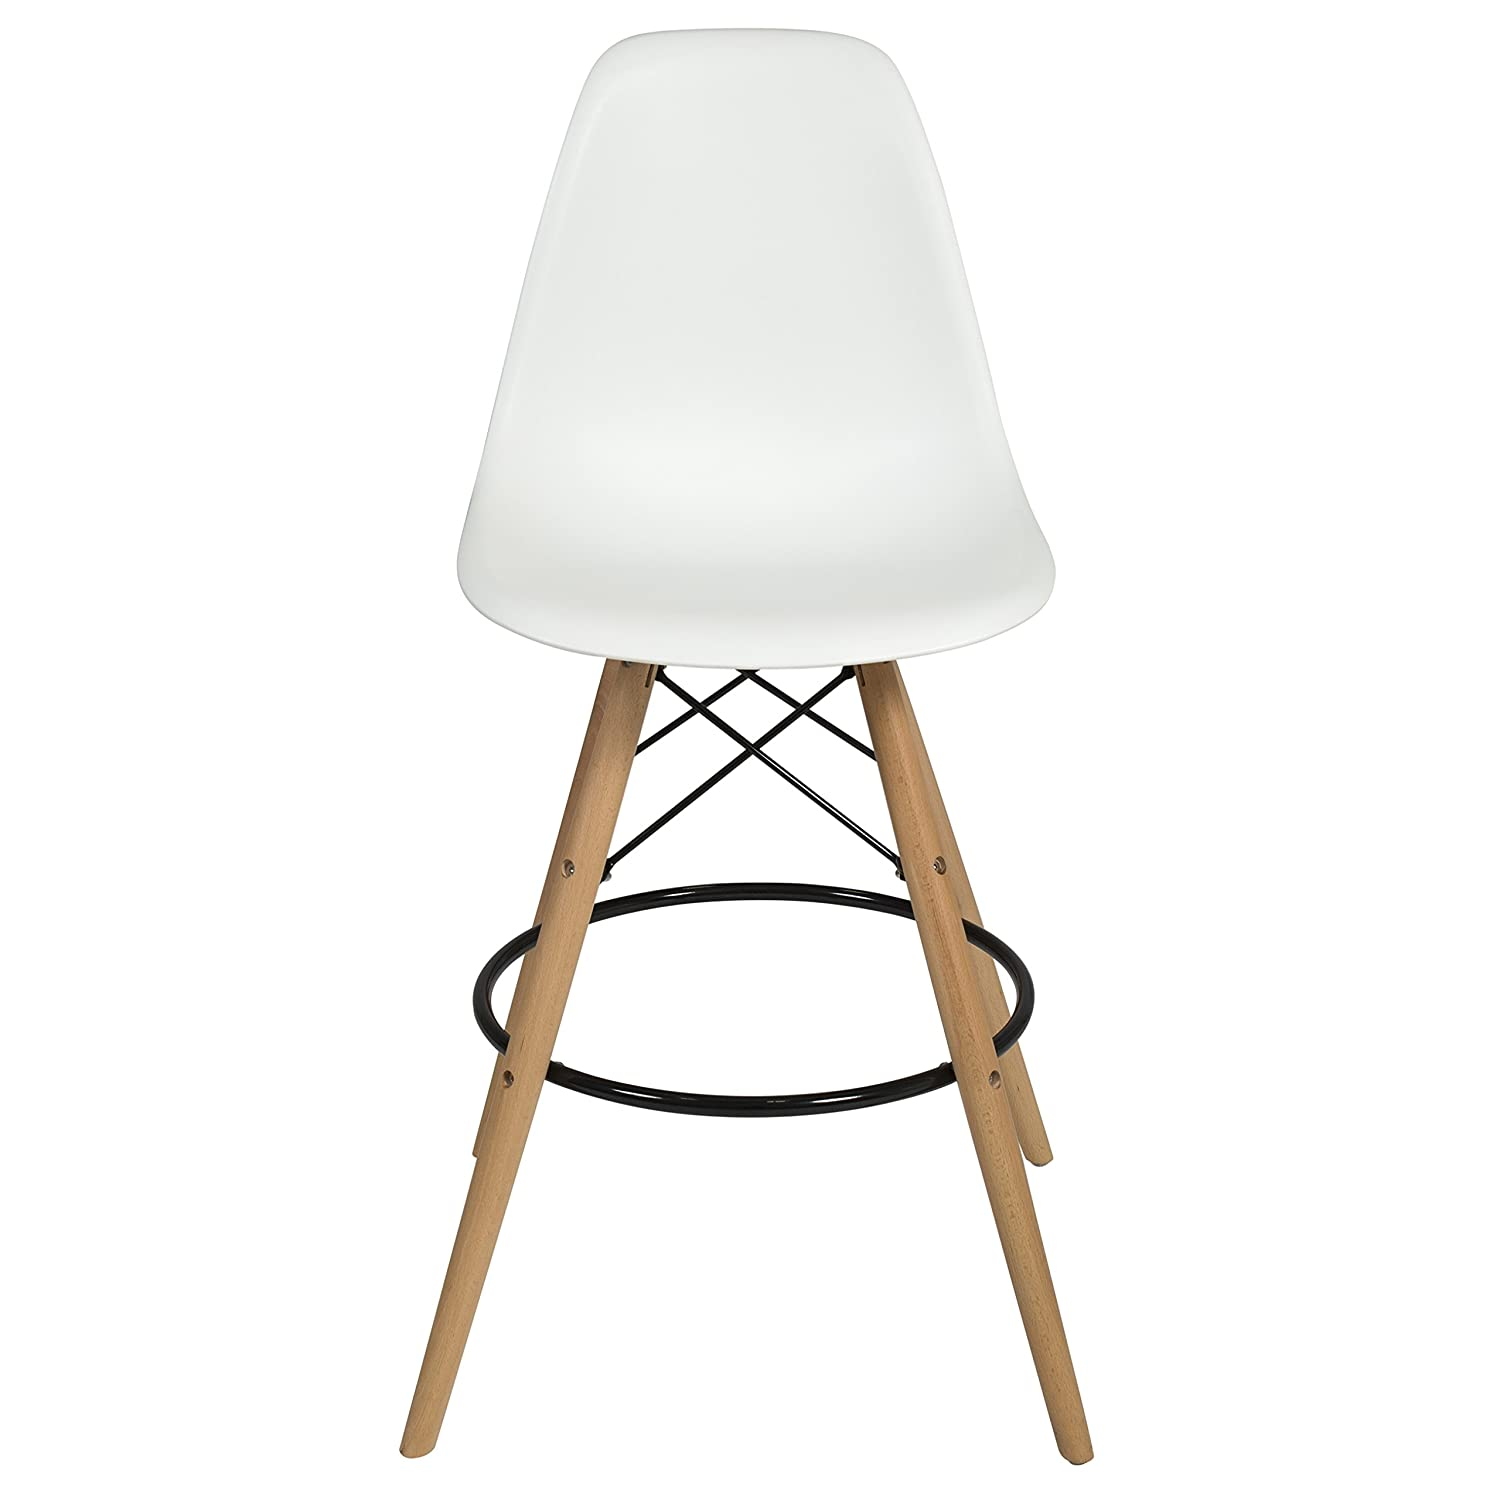 Superieur Amazon.com: Best Choice Products Set Of 2 Mid Century Modern Eames Style Counter  Stools W/ Wooden Legs, Footrests   White: Home U0026 Kitchen